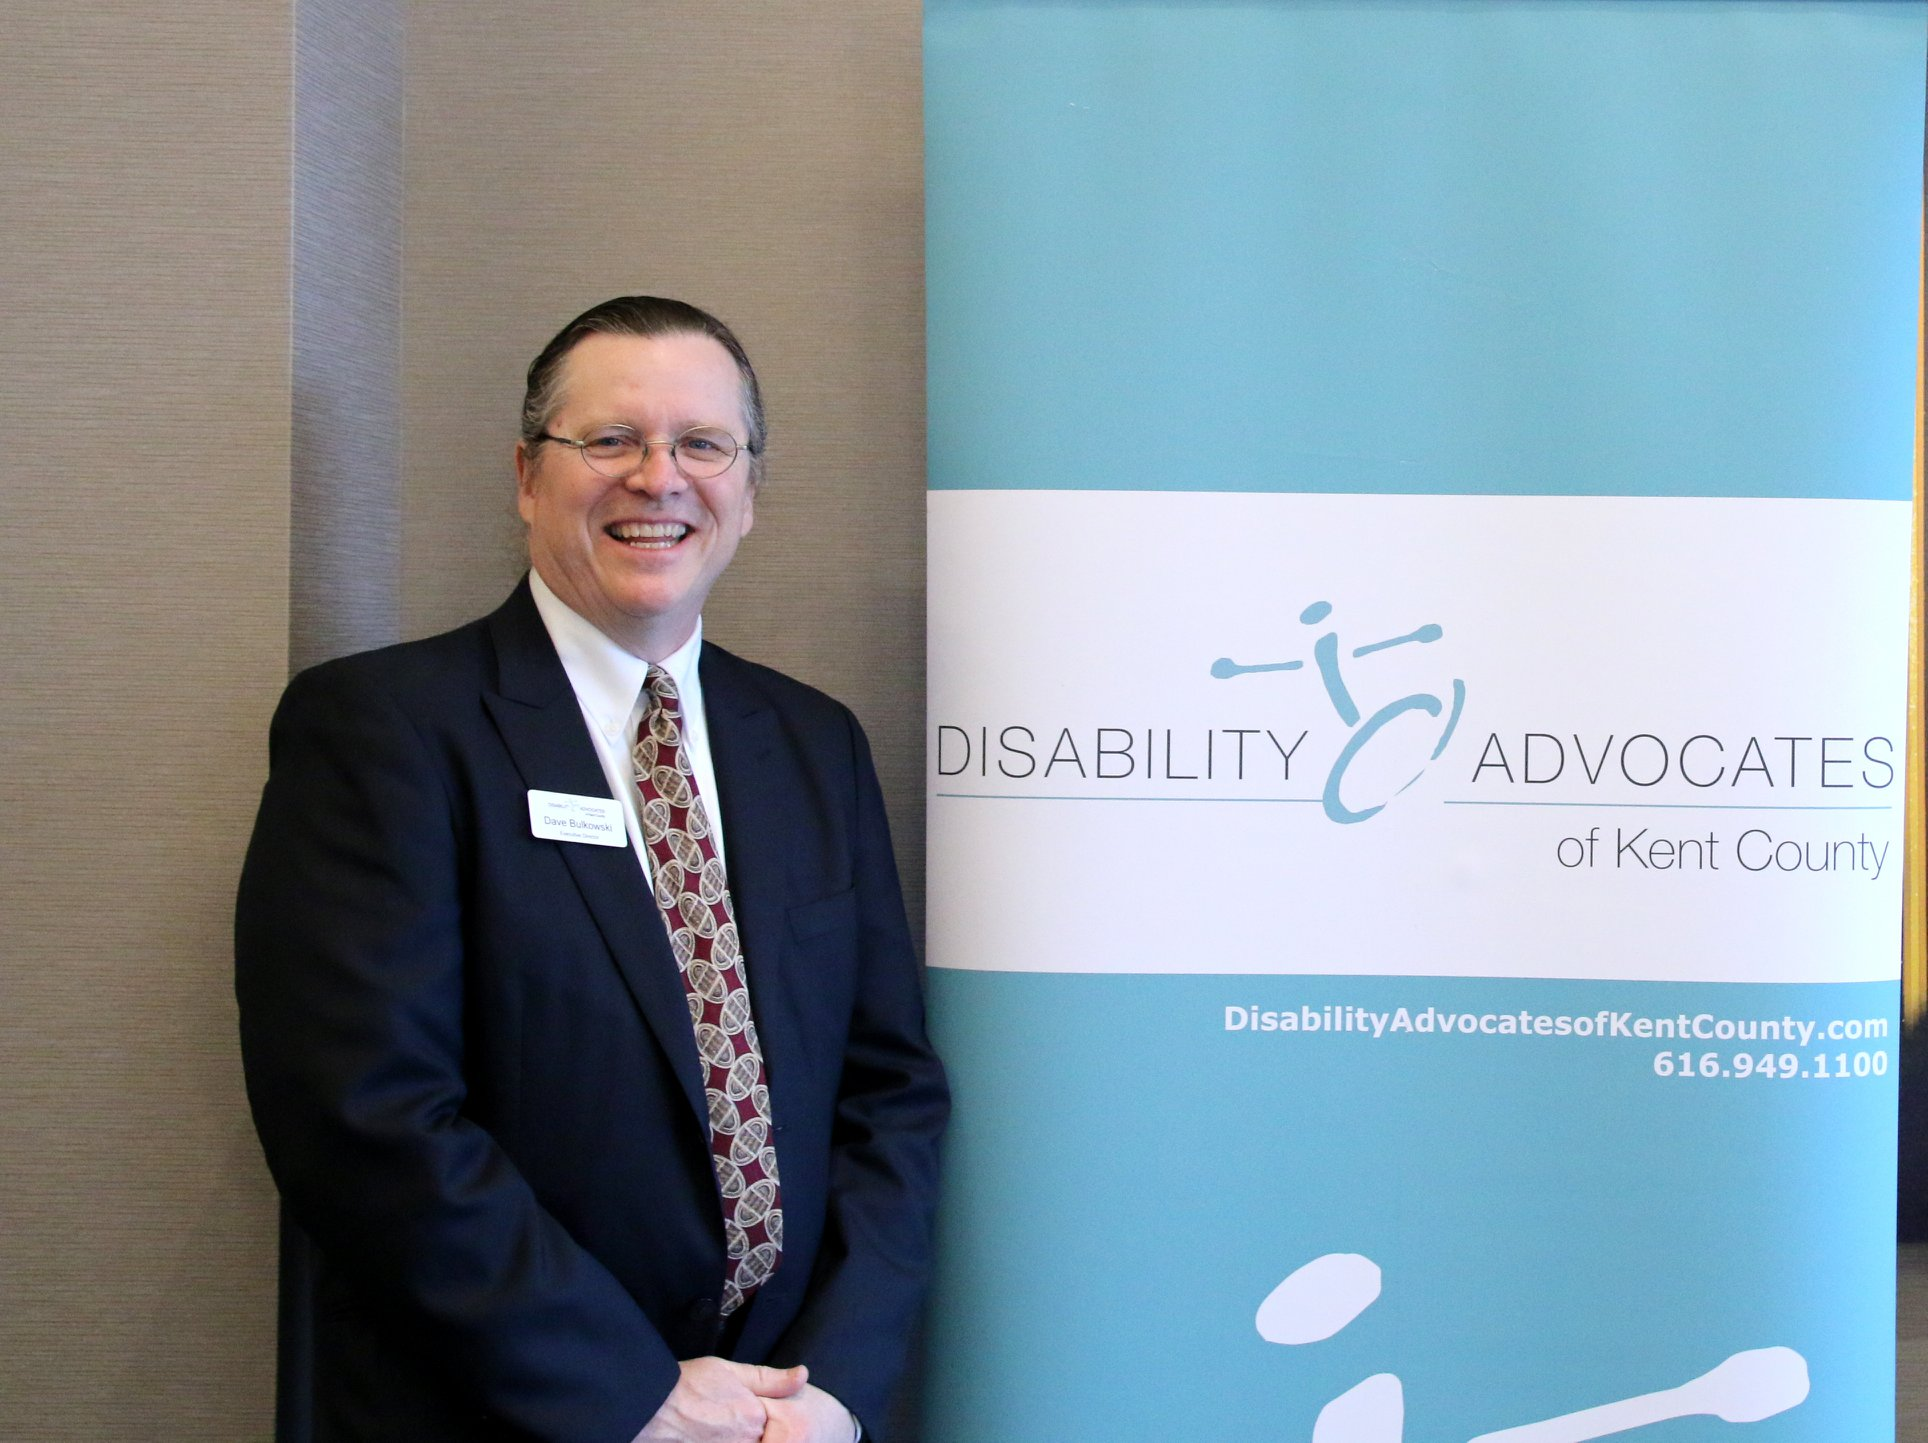 Doug standing next to a Disability Advocates banner